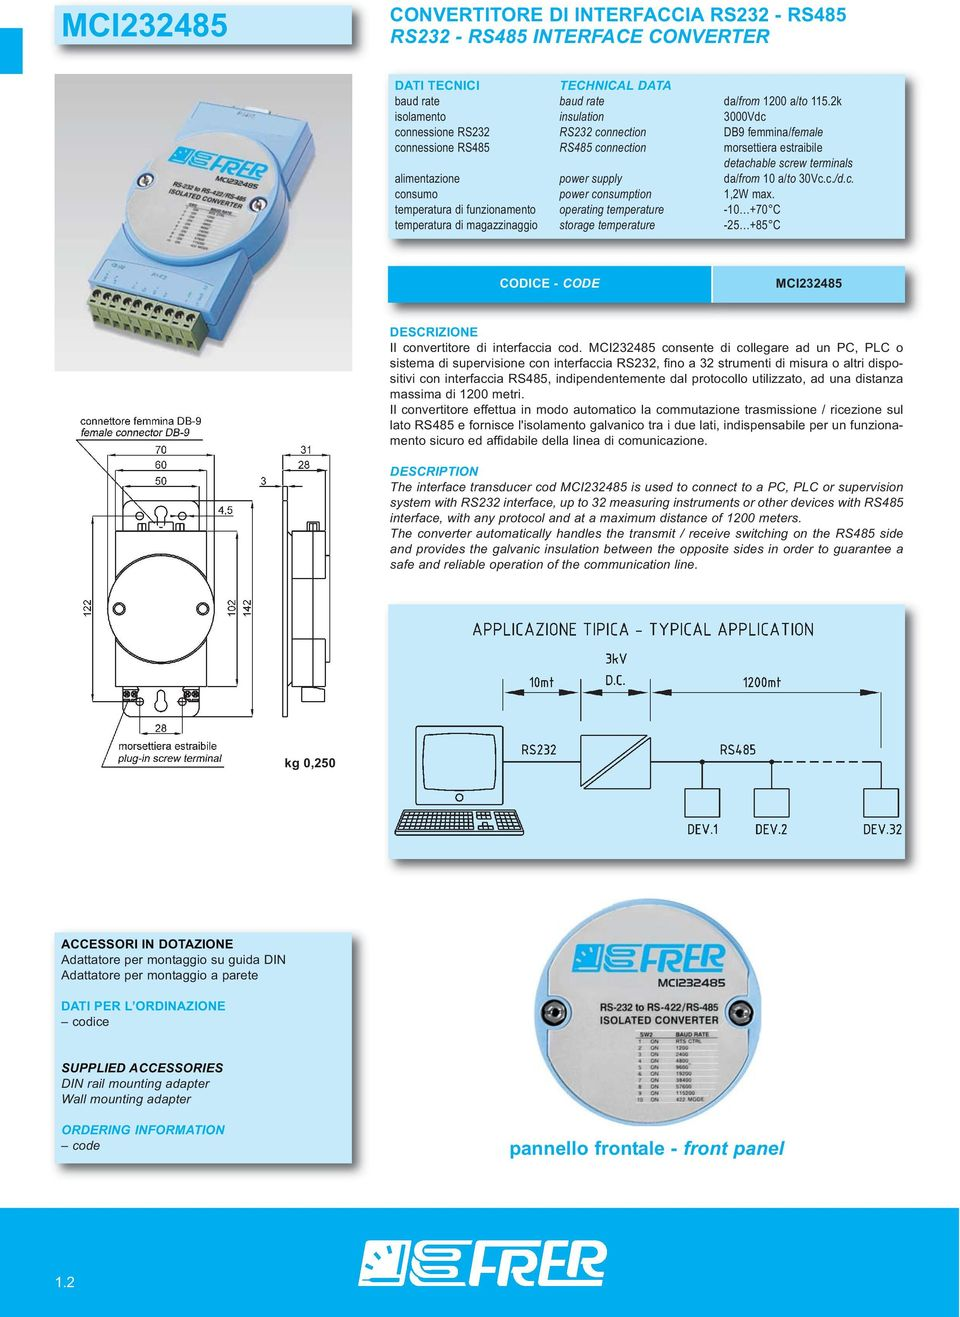 da/from 10 a/to 30Vc.c./d.c. consumo power consumption 1,2W max.